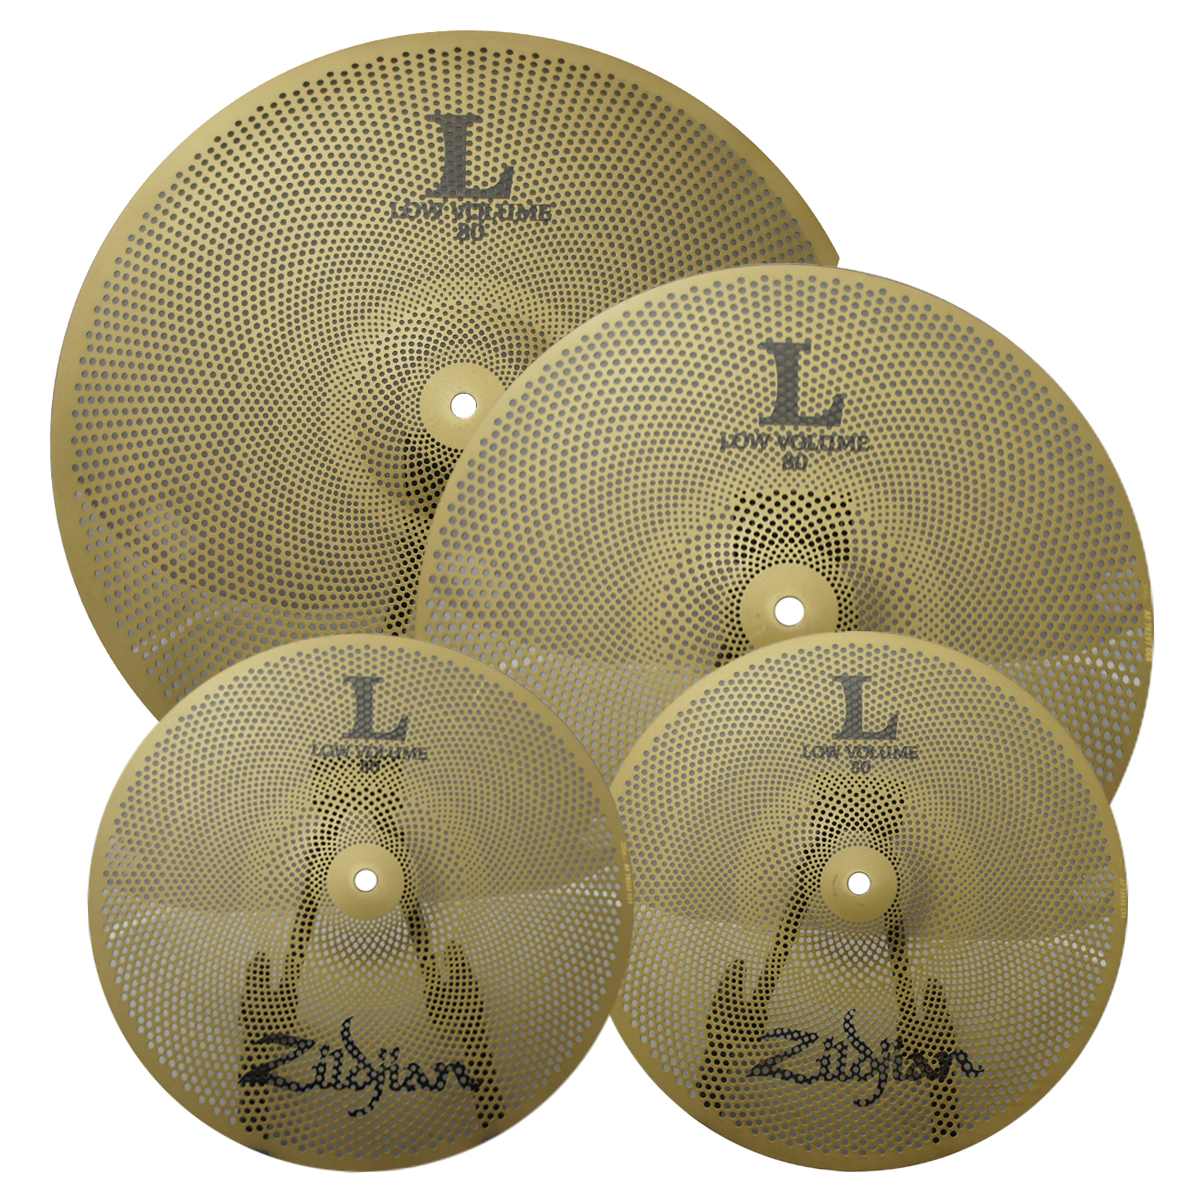 "Zildjian LV348 L80 Series Low Volume Cymbal Set w/ 13"" Hi-Hat Pair, 14"" Crash & 18"" Crash-Ride - Matte Finish"